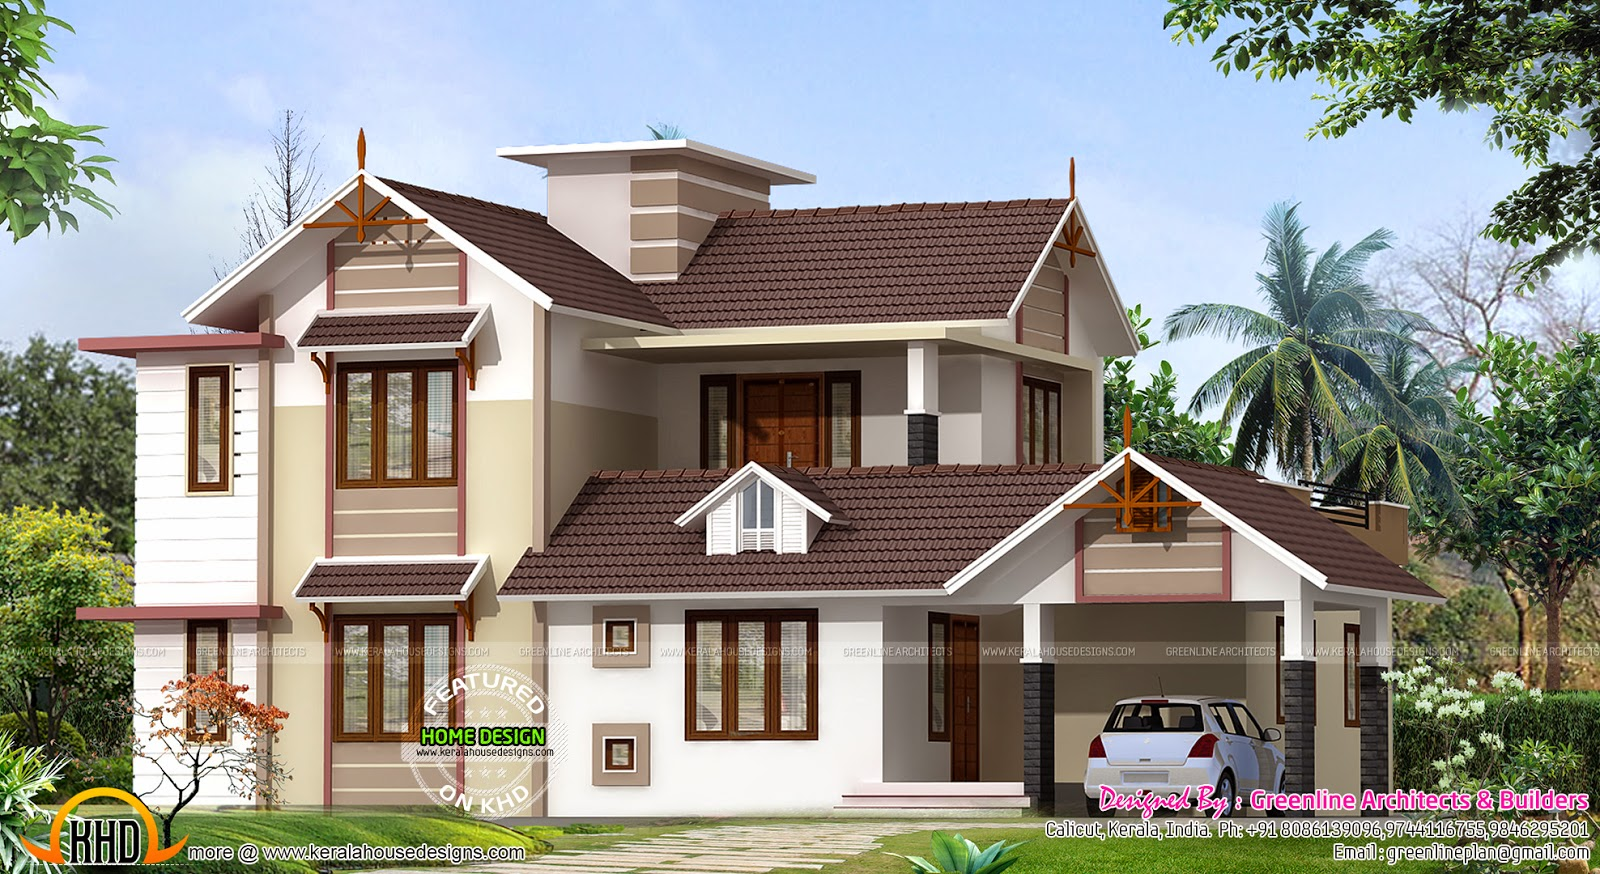 2400 sq ft new house design kerala home design and floor plans - New homes designs photos ...